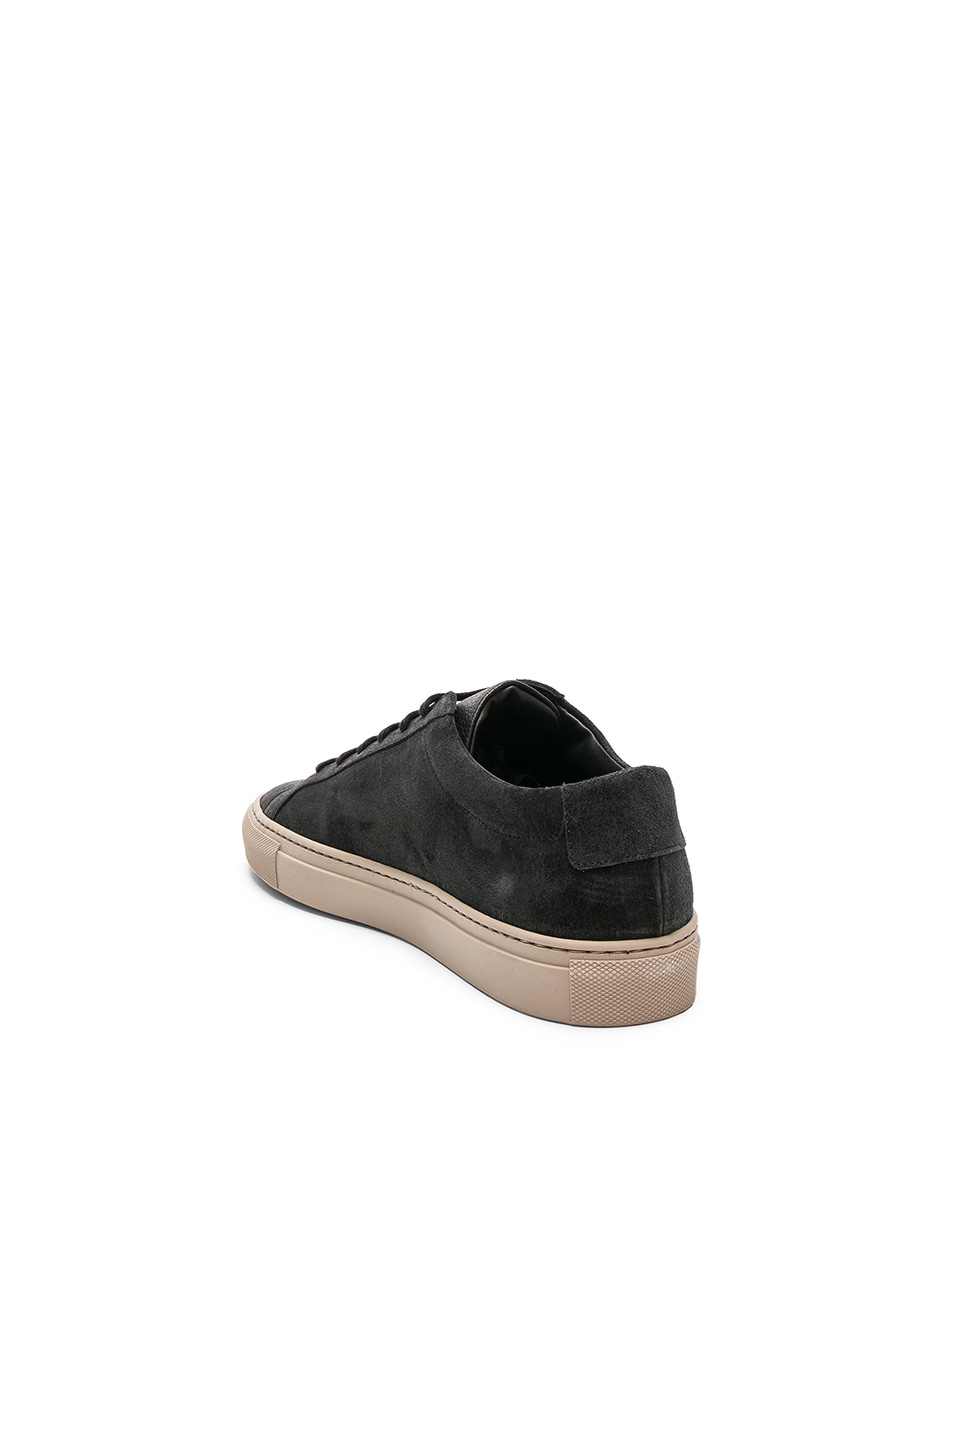 c546cfb79ed1 Image 3 of Common Projects Waxed Suede Achilles Low in Black